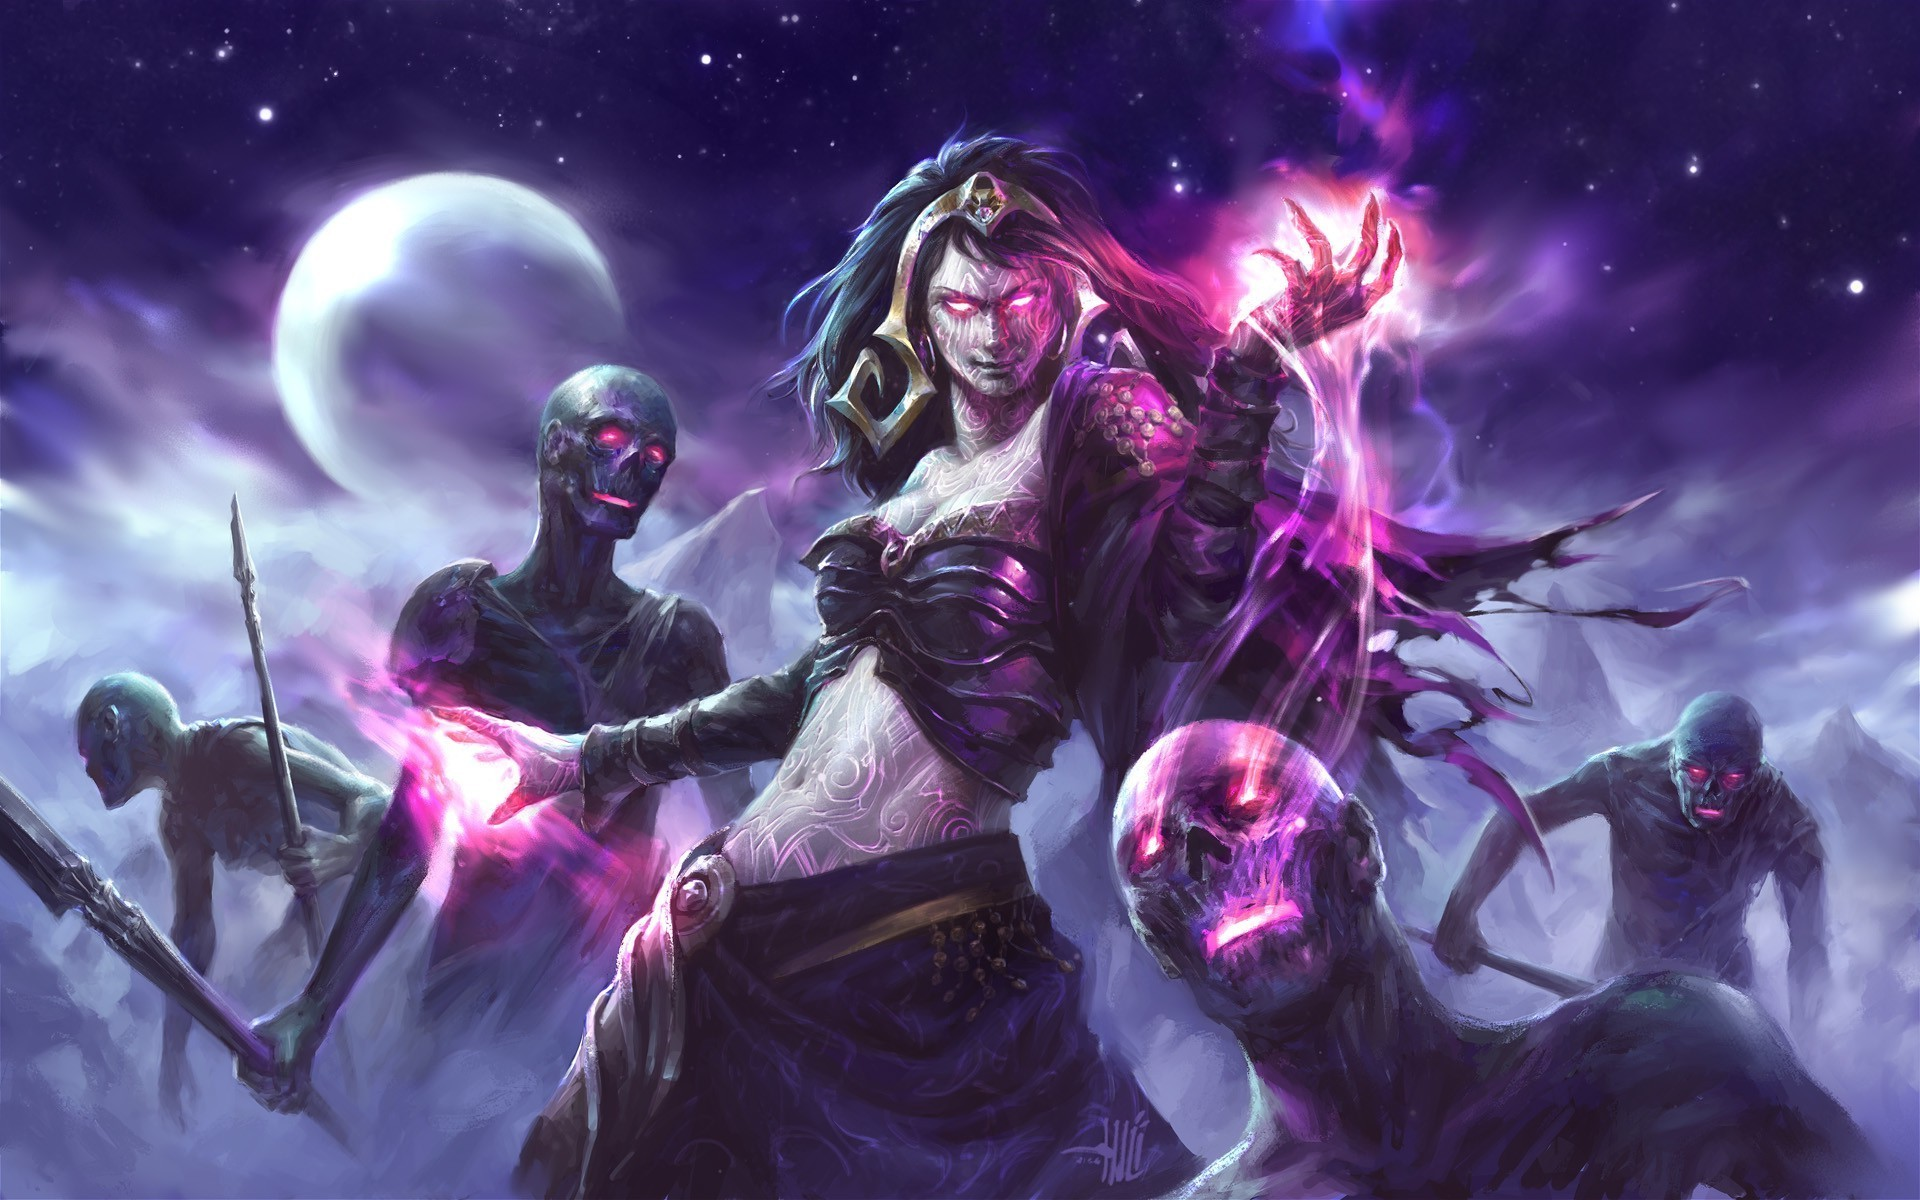 Fantasy Art Magic Hd Wallpapers Desktop And Mobile: MTG HD Wallpaper (81+ Images